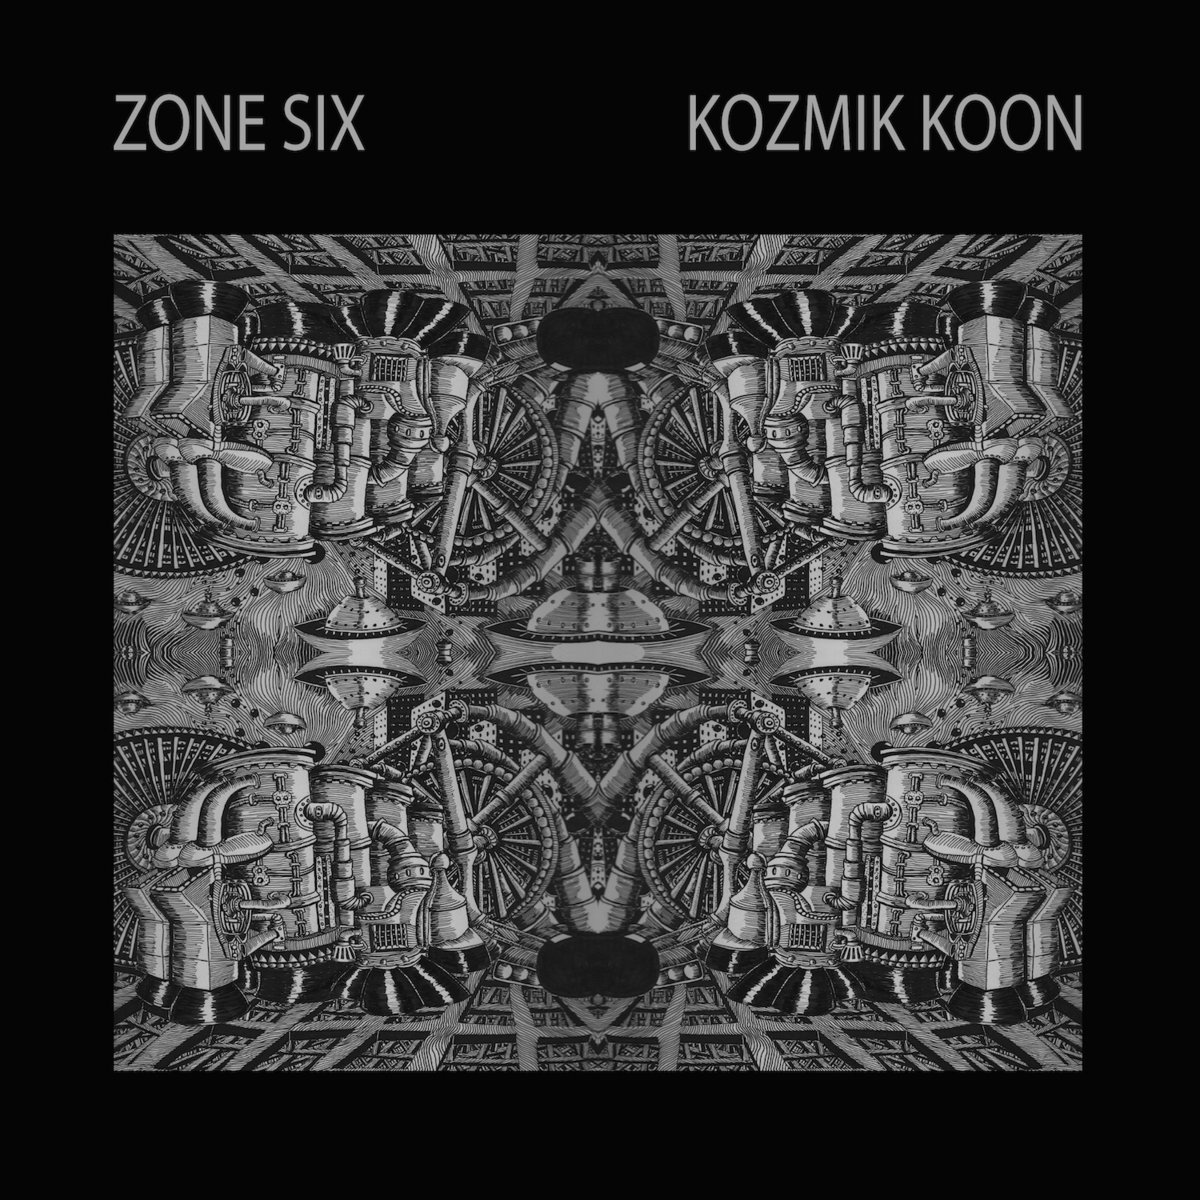 Zone Six Kozmik Koon